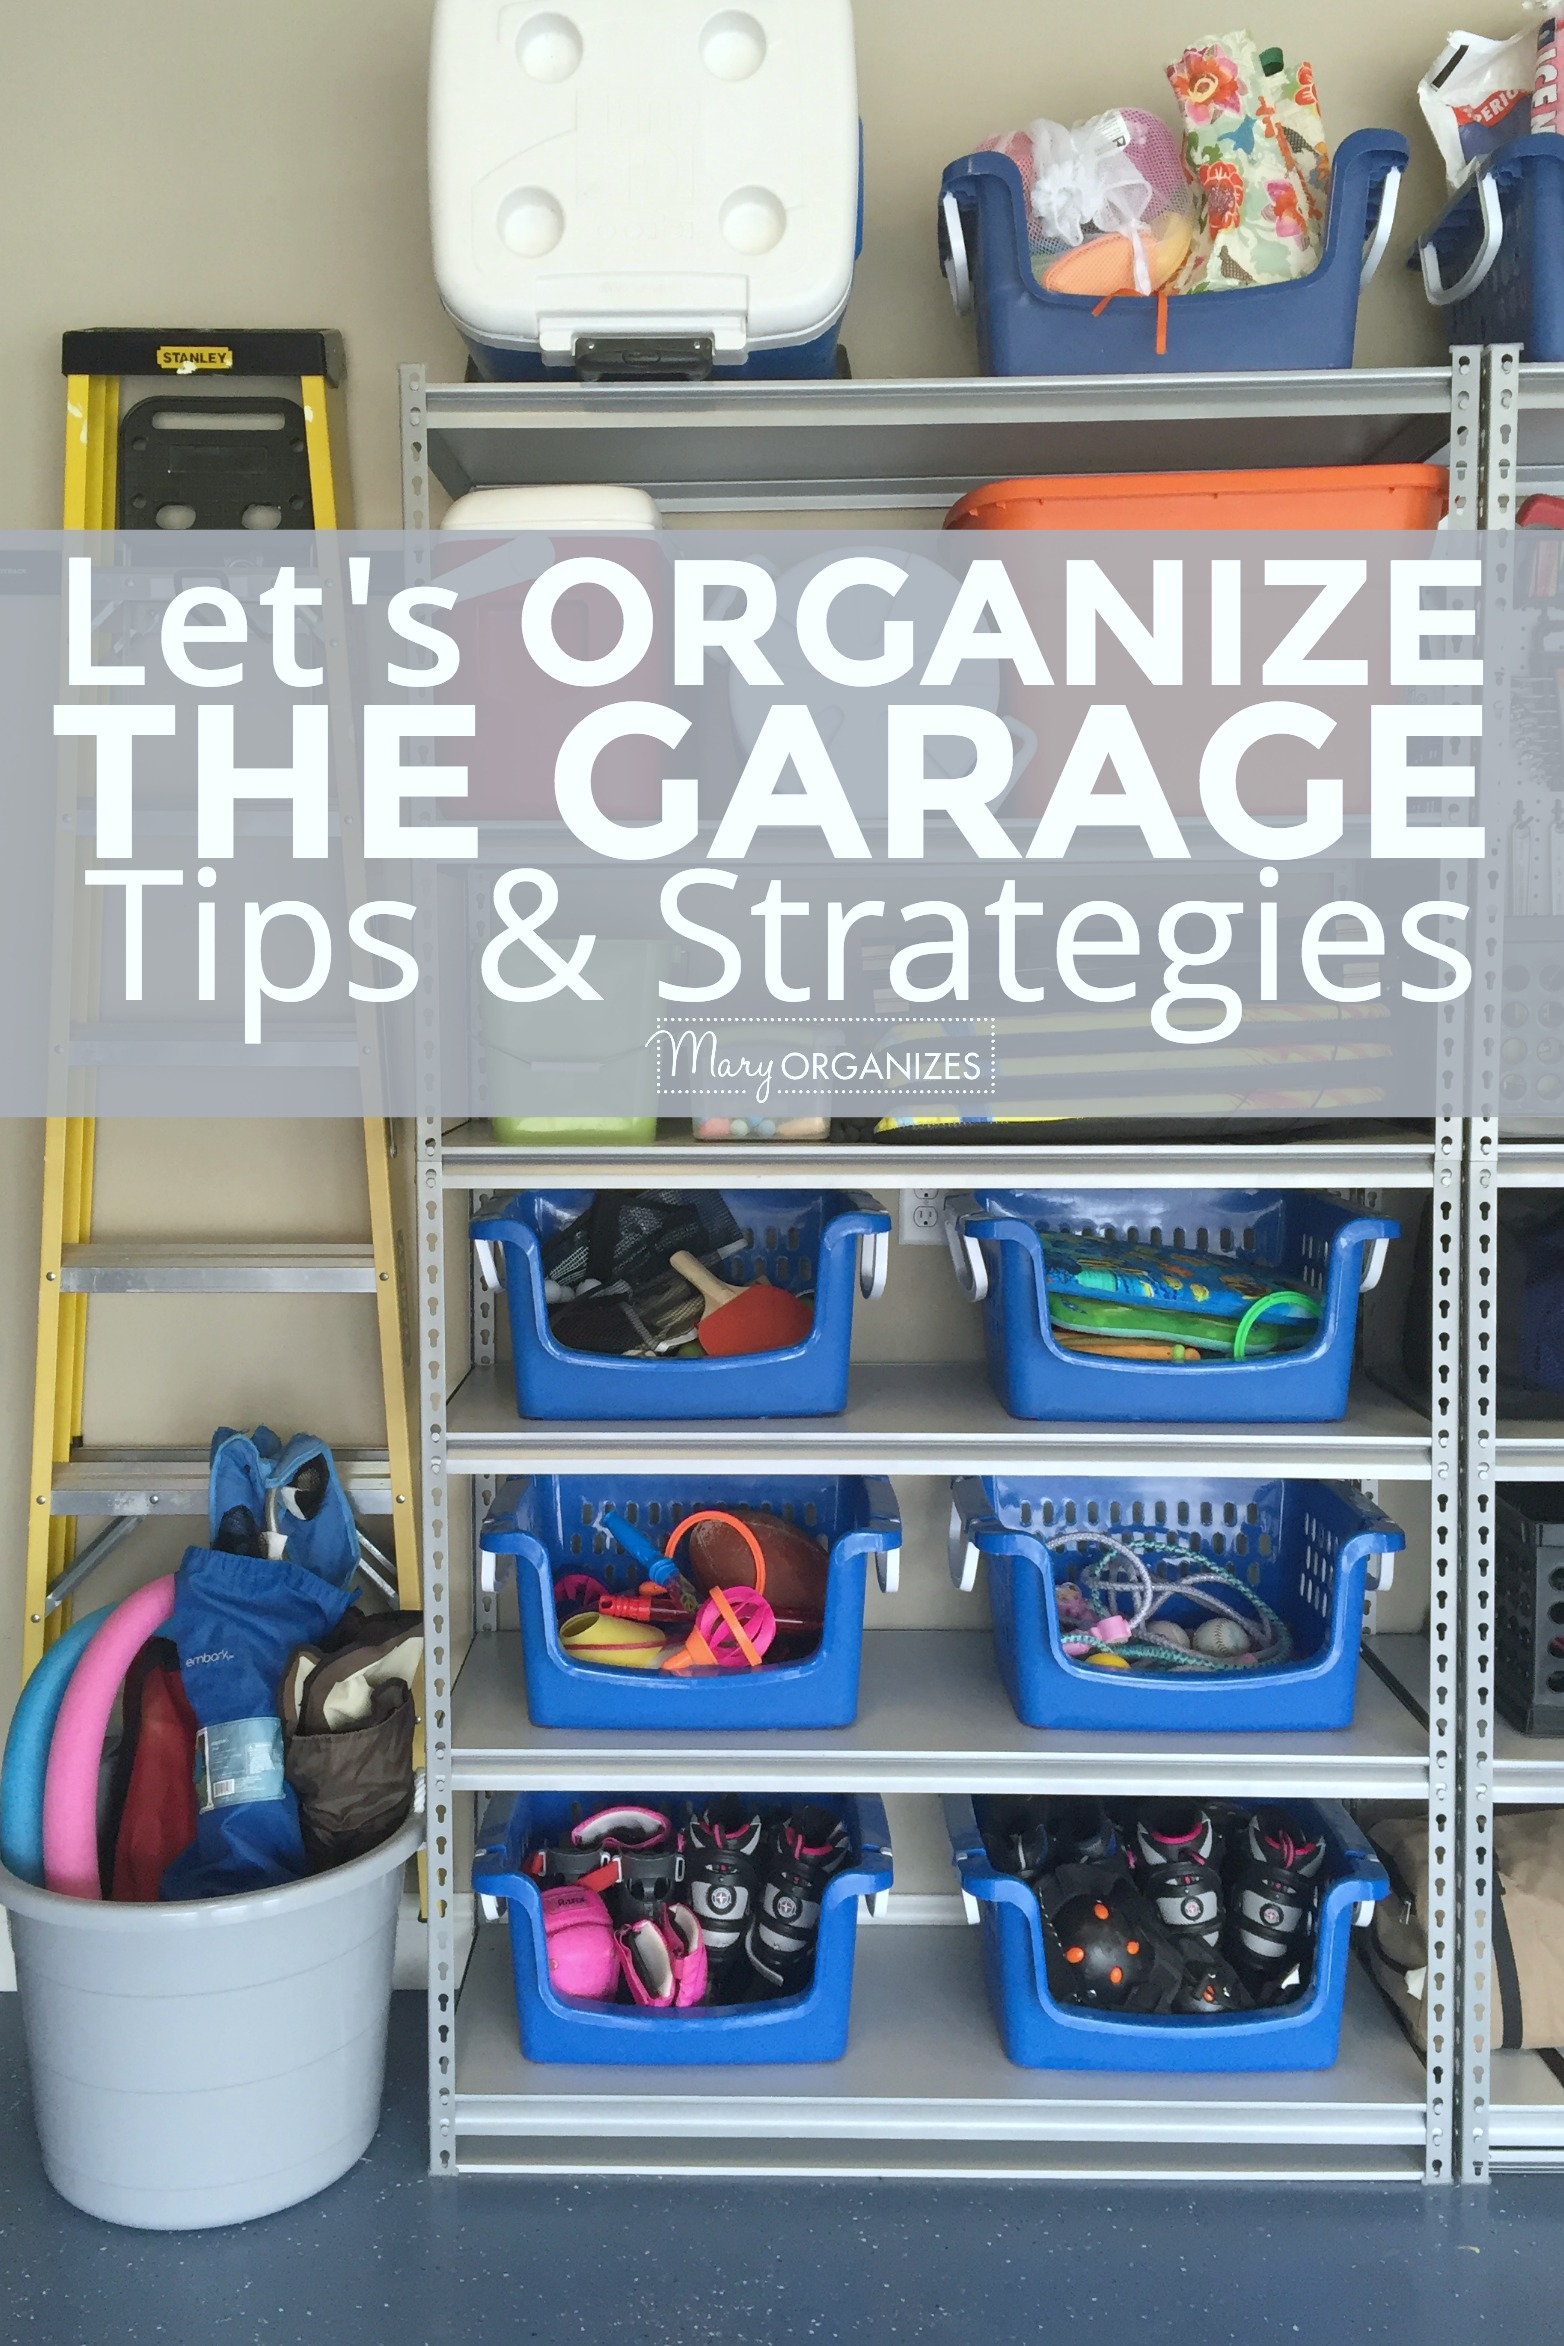 Let's ORGANIZE THE GARAGE - Tips and Strategies -v